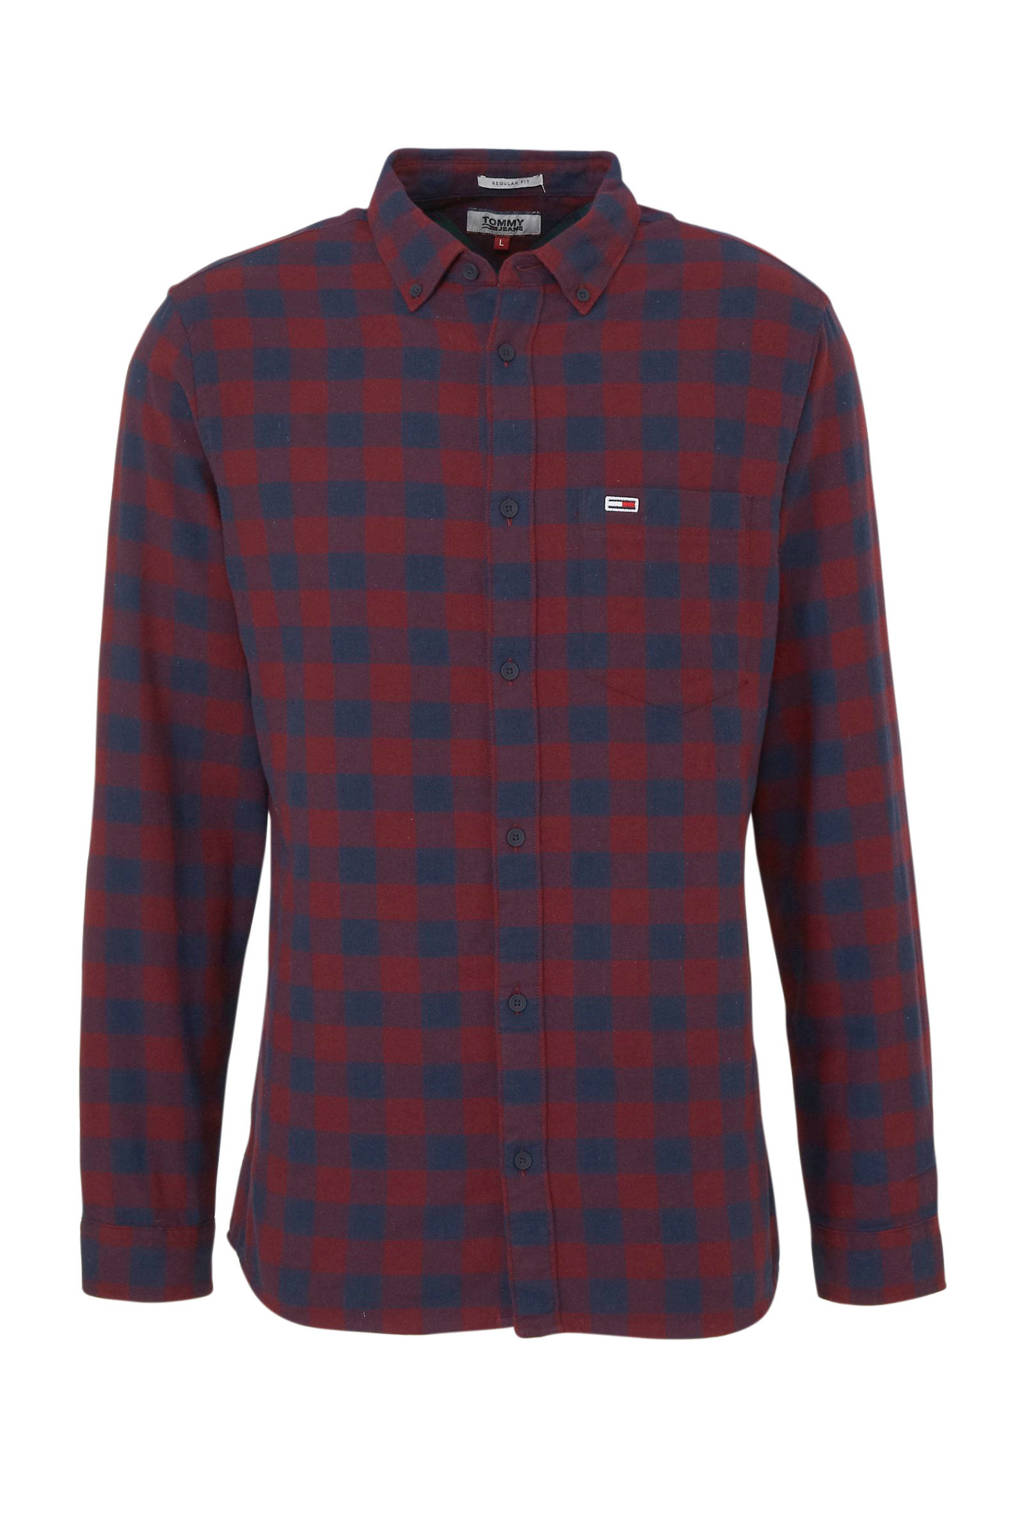 Tommy Jeans geruit regular fit overhemd rood/donkerblauw, Rood/donkerblauw